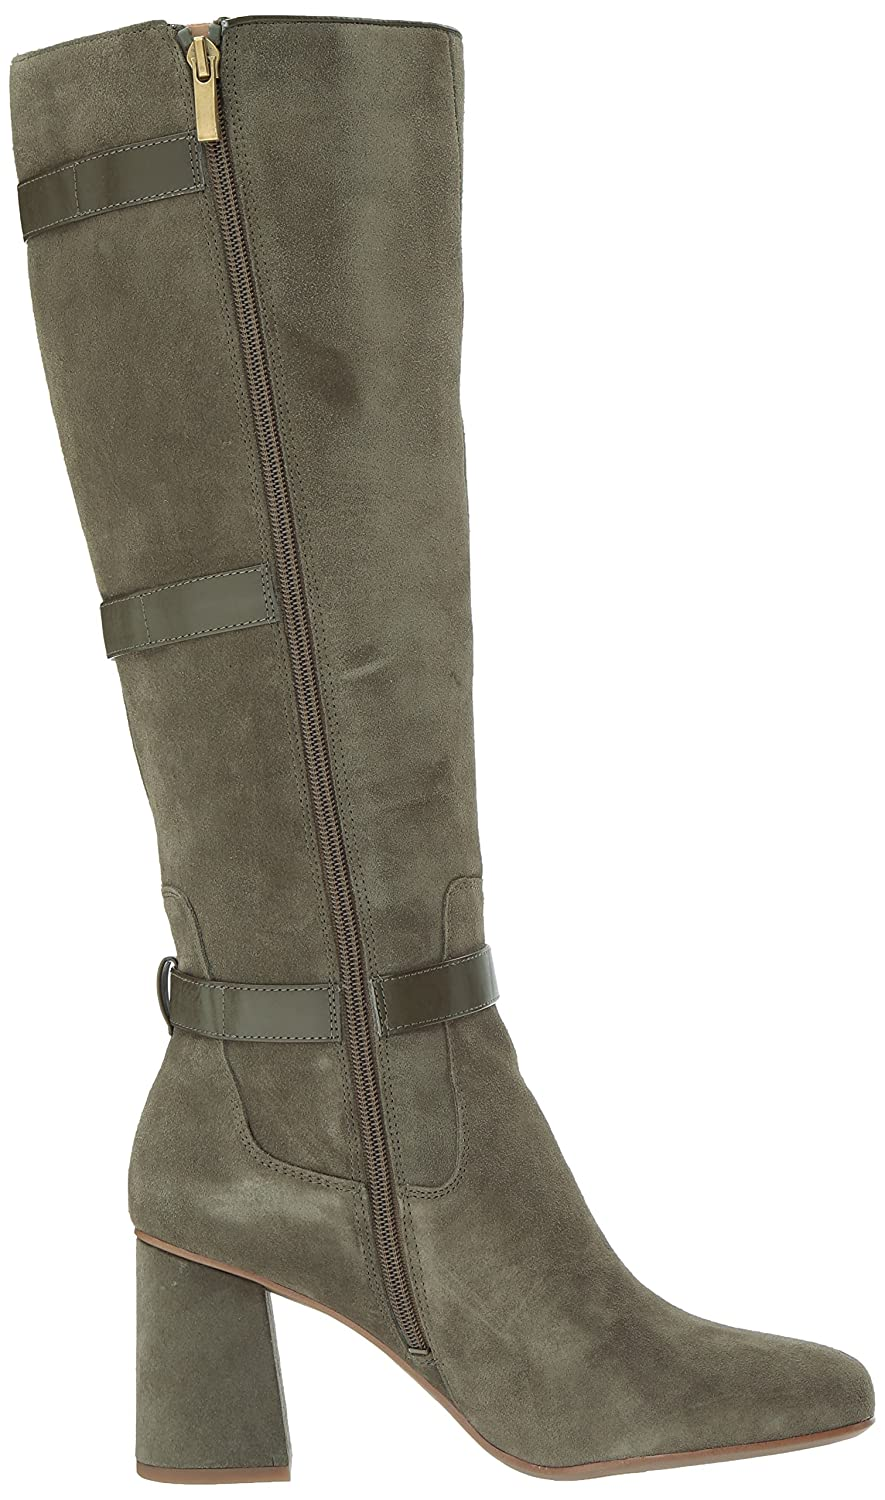 Franco Sarto Women's Knoll Knee High Boot B0751NBZQS 9 B(M) US|Pastoral Green